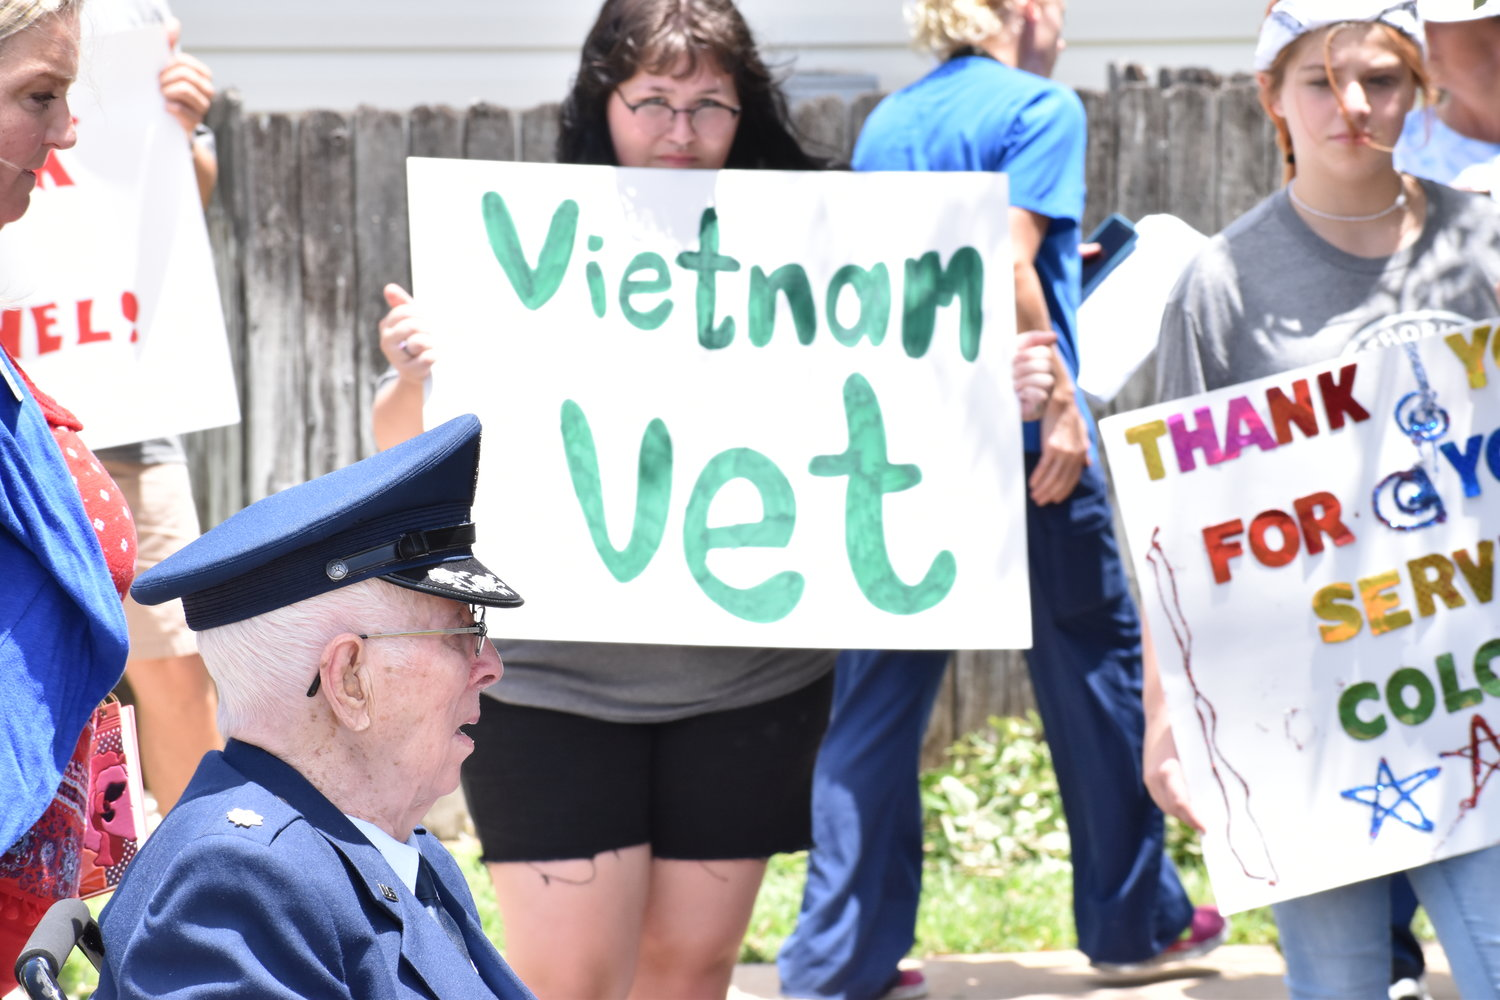 Lt. Col. Jerry Jennings is wheeled past attendees with supportive signs before taking pictures with family, staff and supporters.